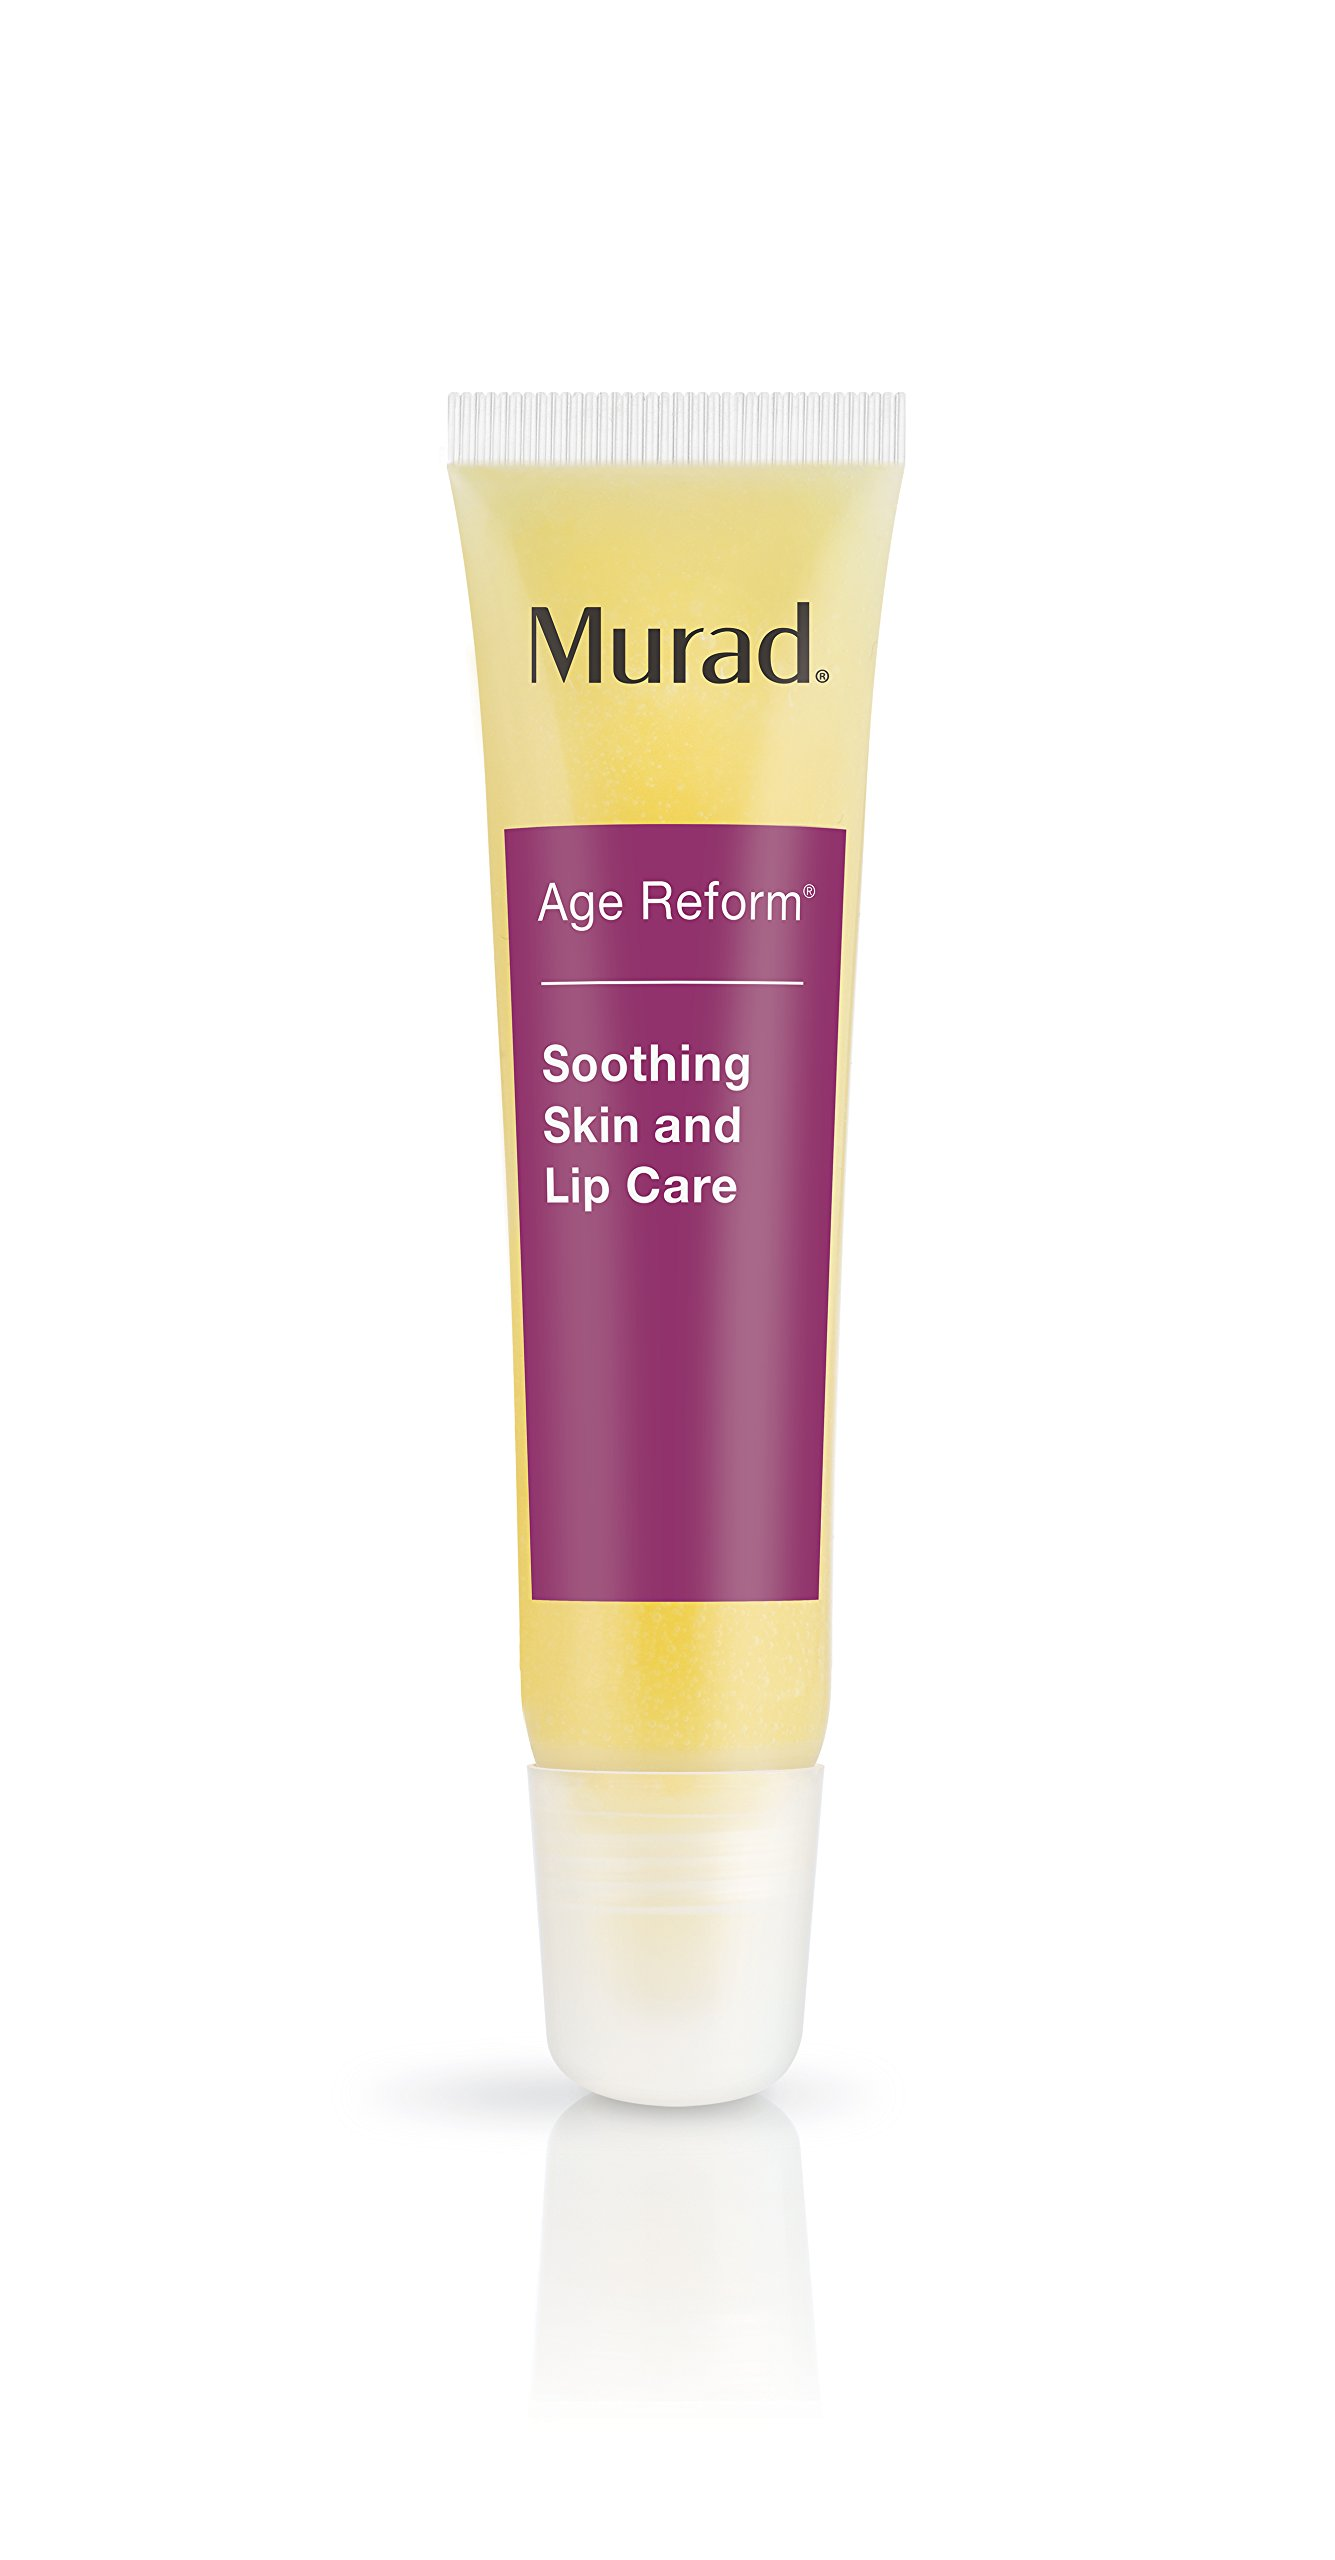 Murad Age Reform Soothing Skin and Lip Care (0.5 oz) by Murad (Image #1)